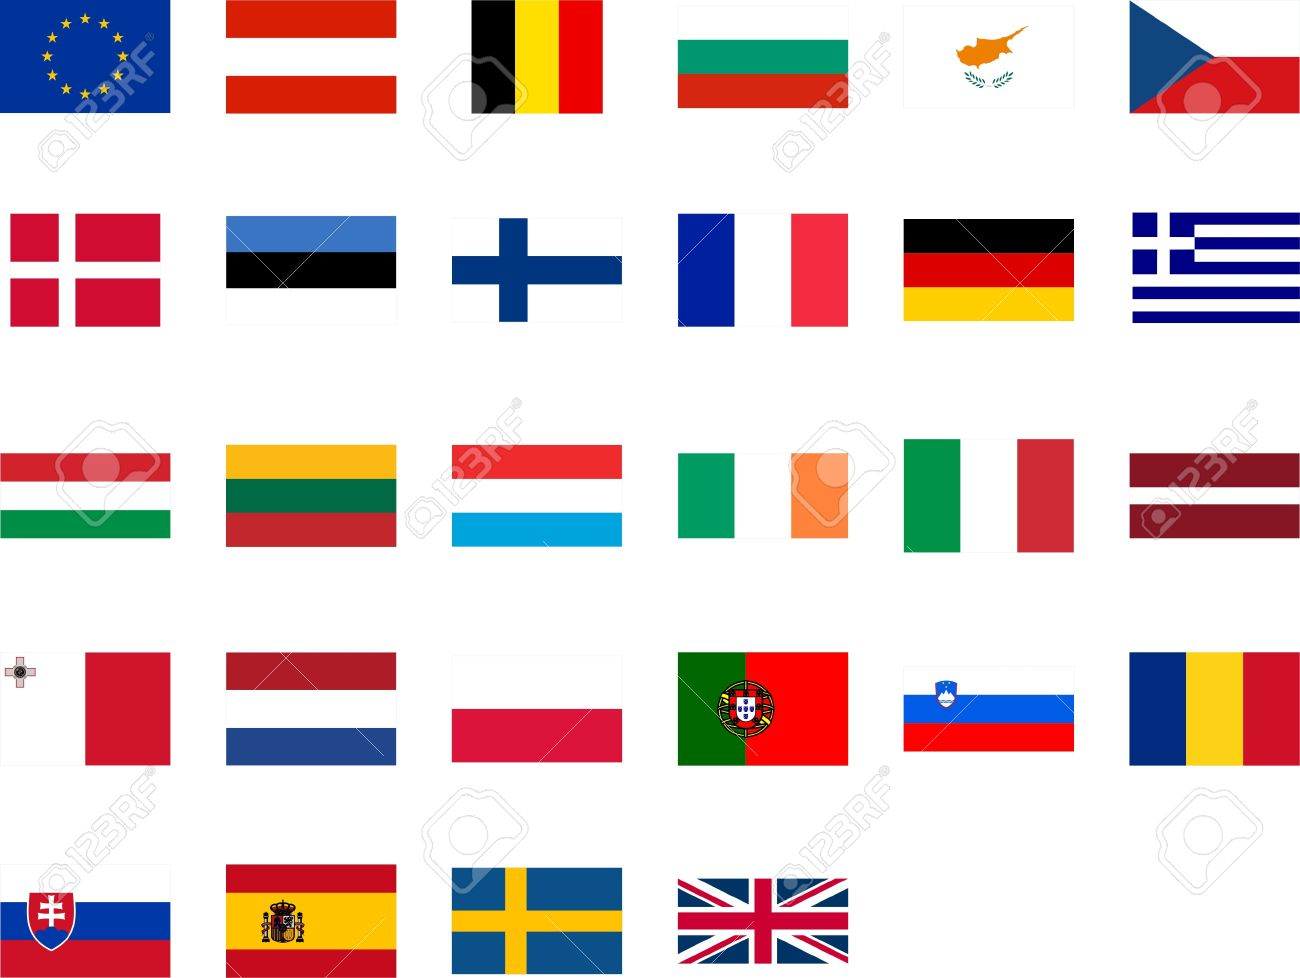 Flags Of The European Union Member Countries Royalty Free Cliparts